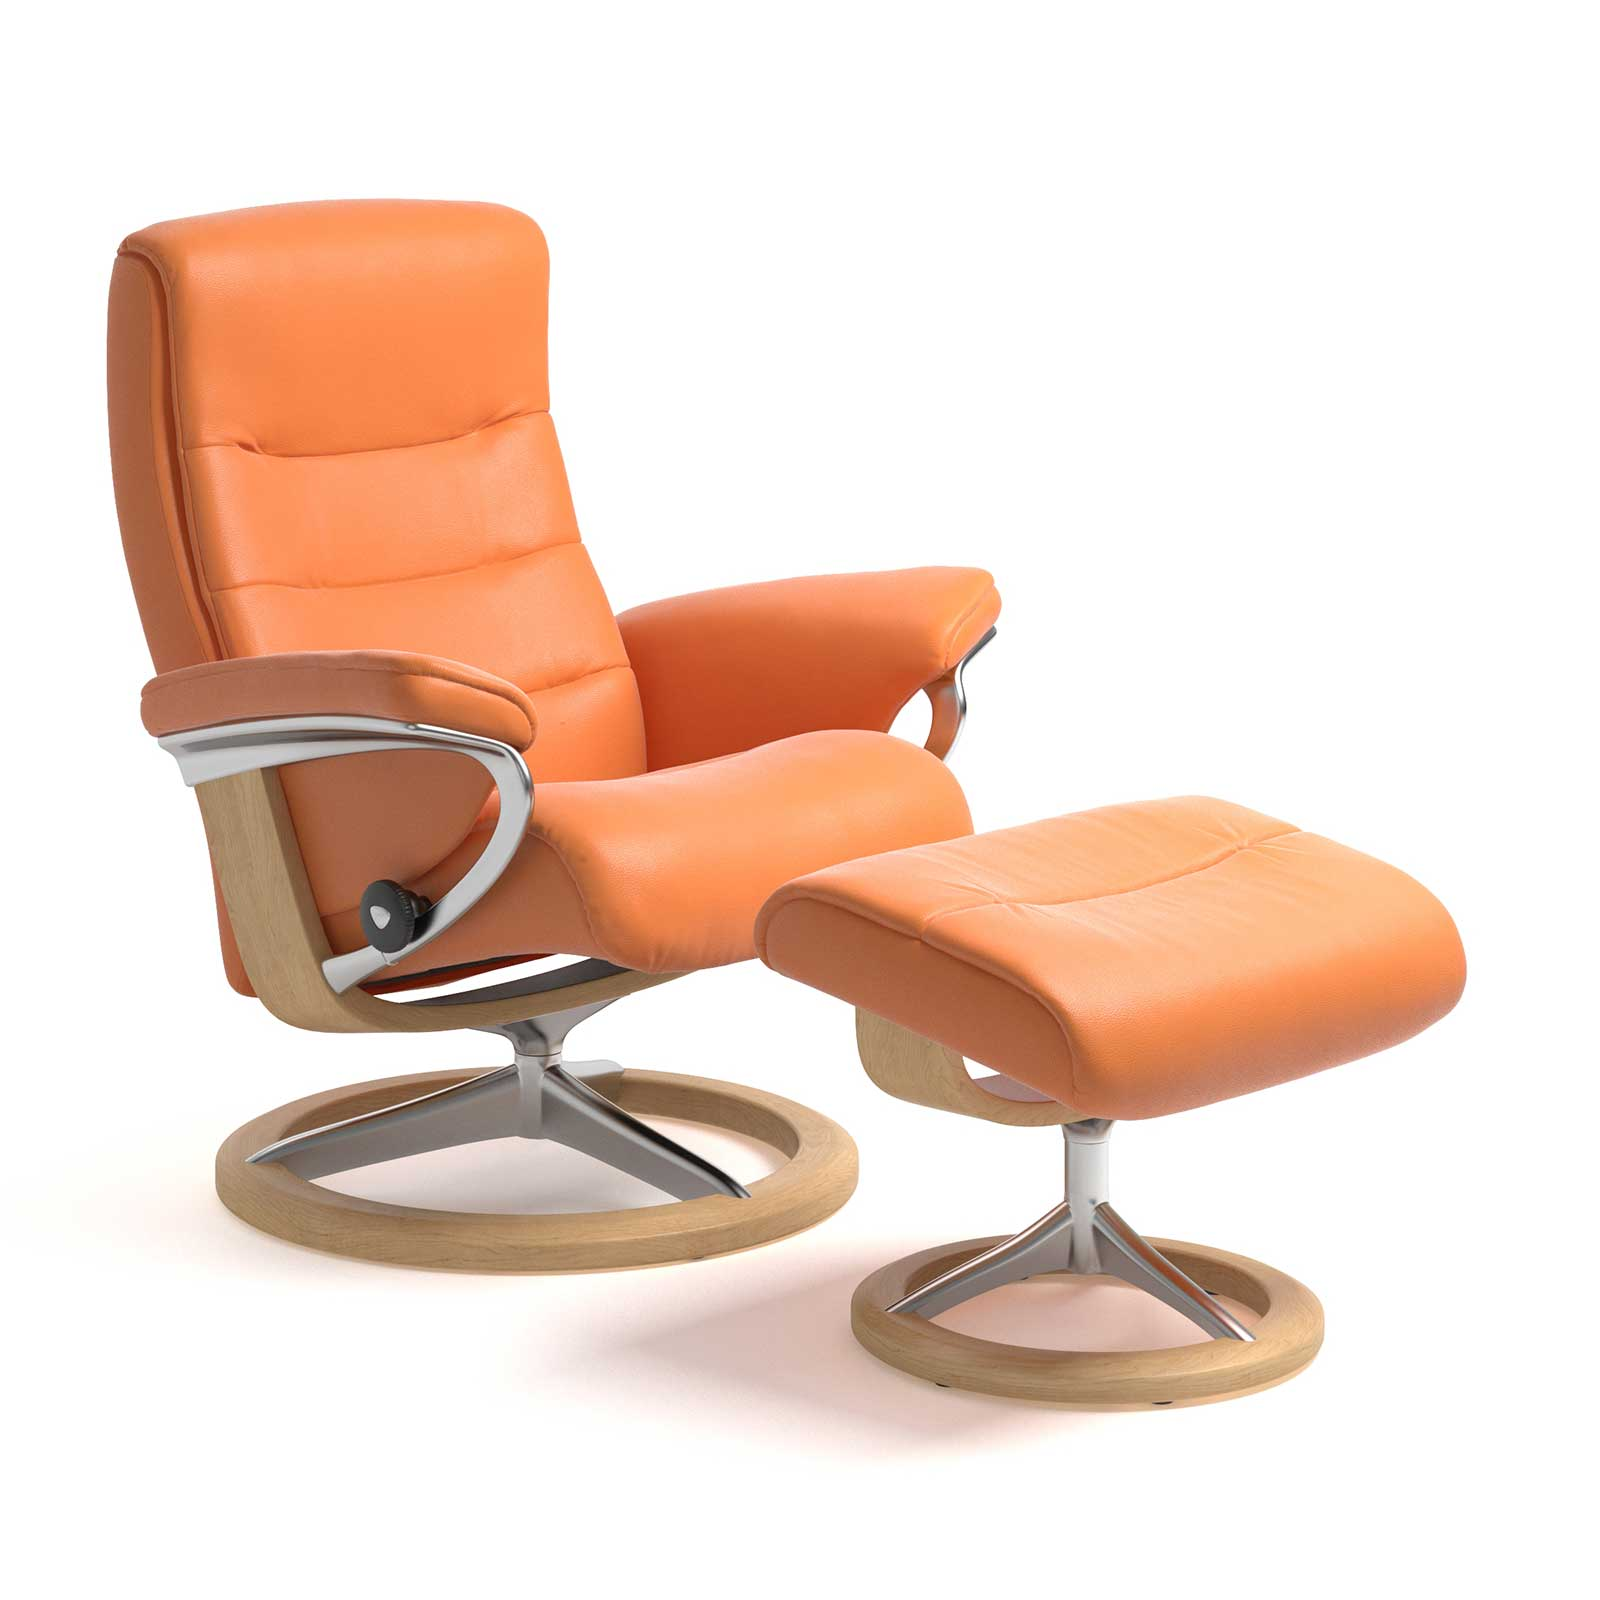 Stressless Sessel Nordic Signature Paloma Apricot Orange Mit Hocker